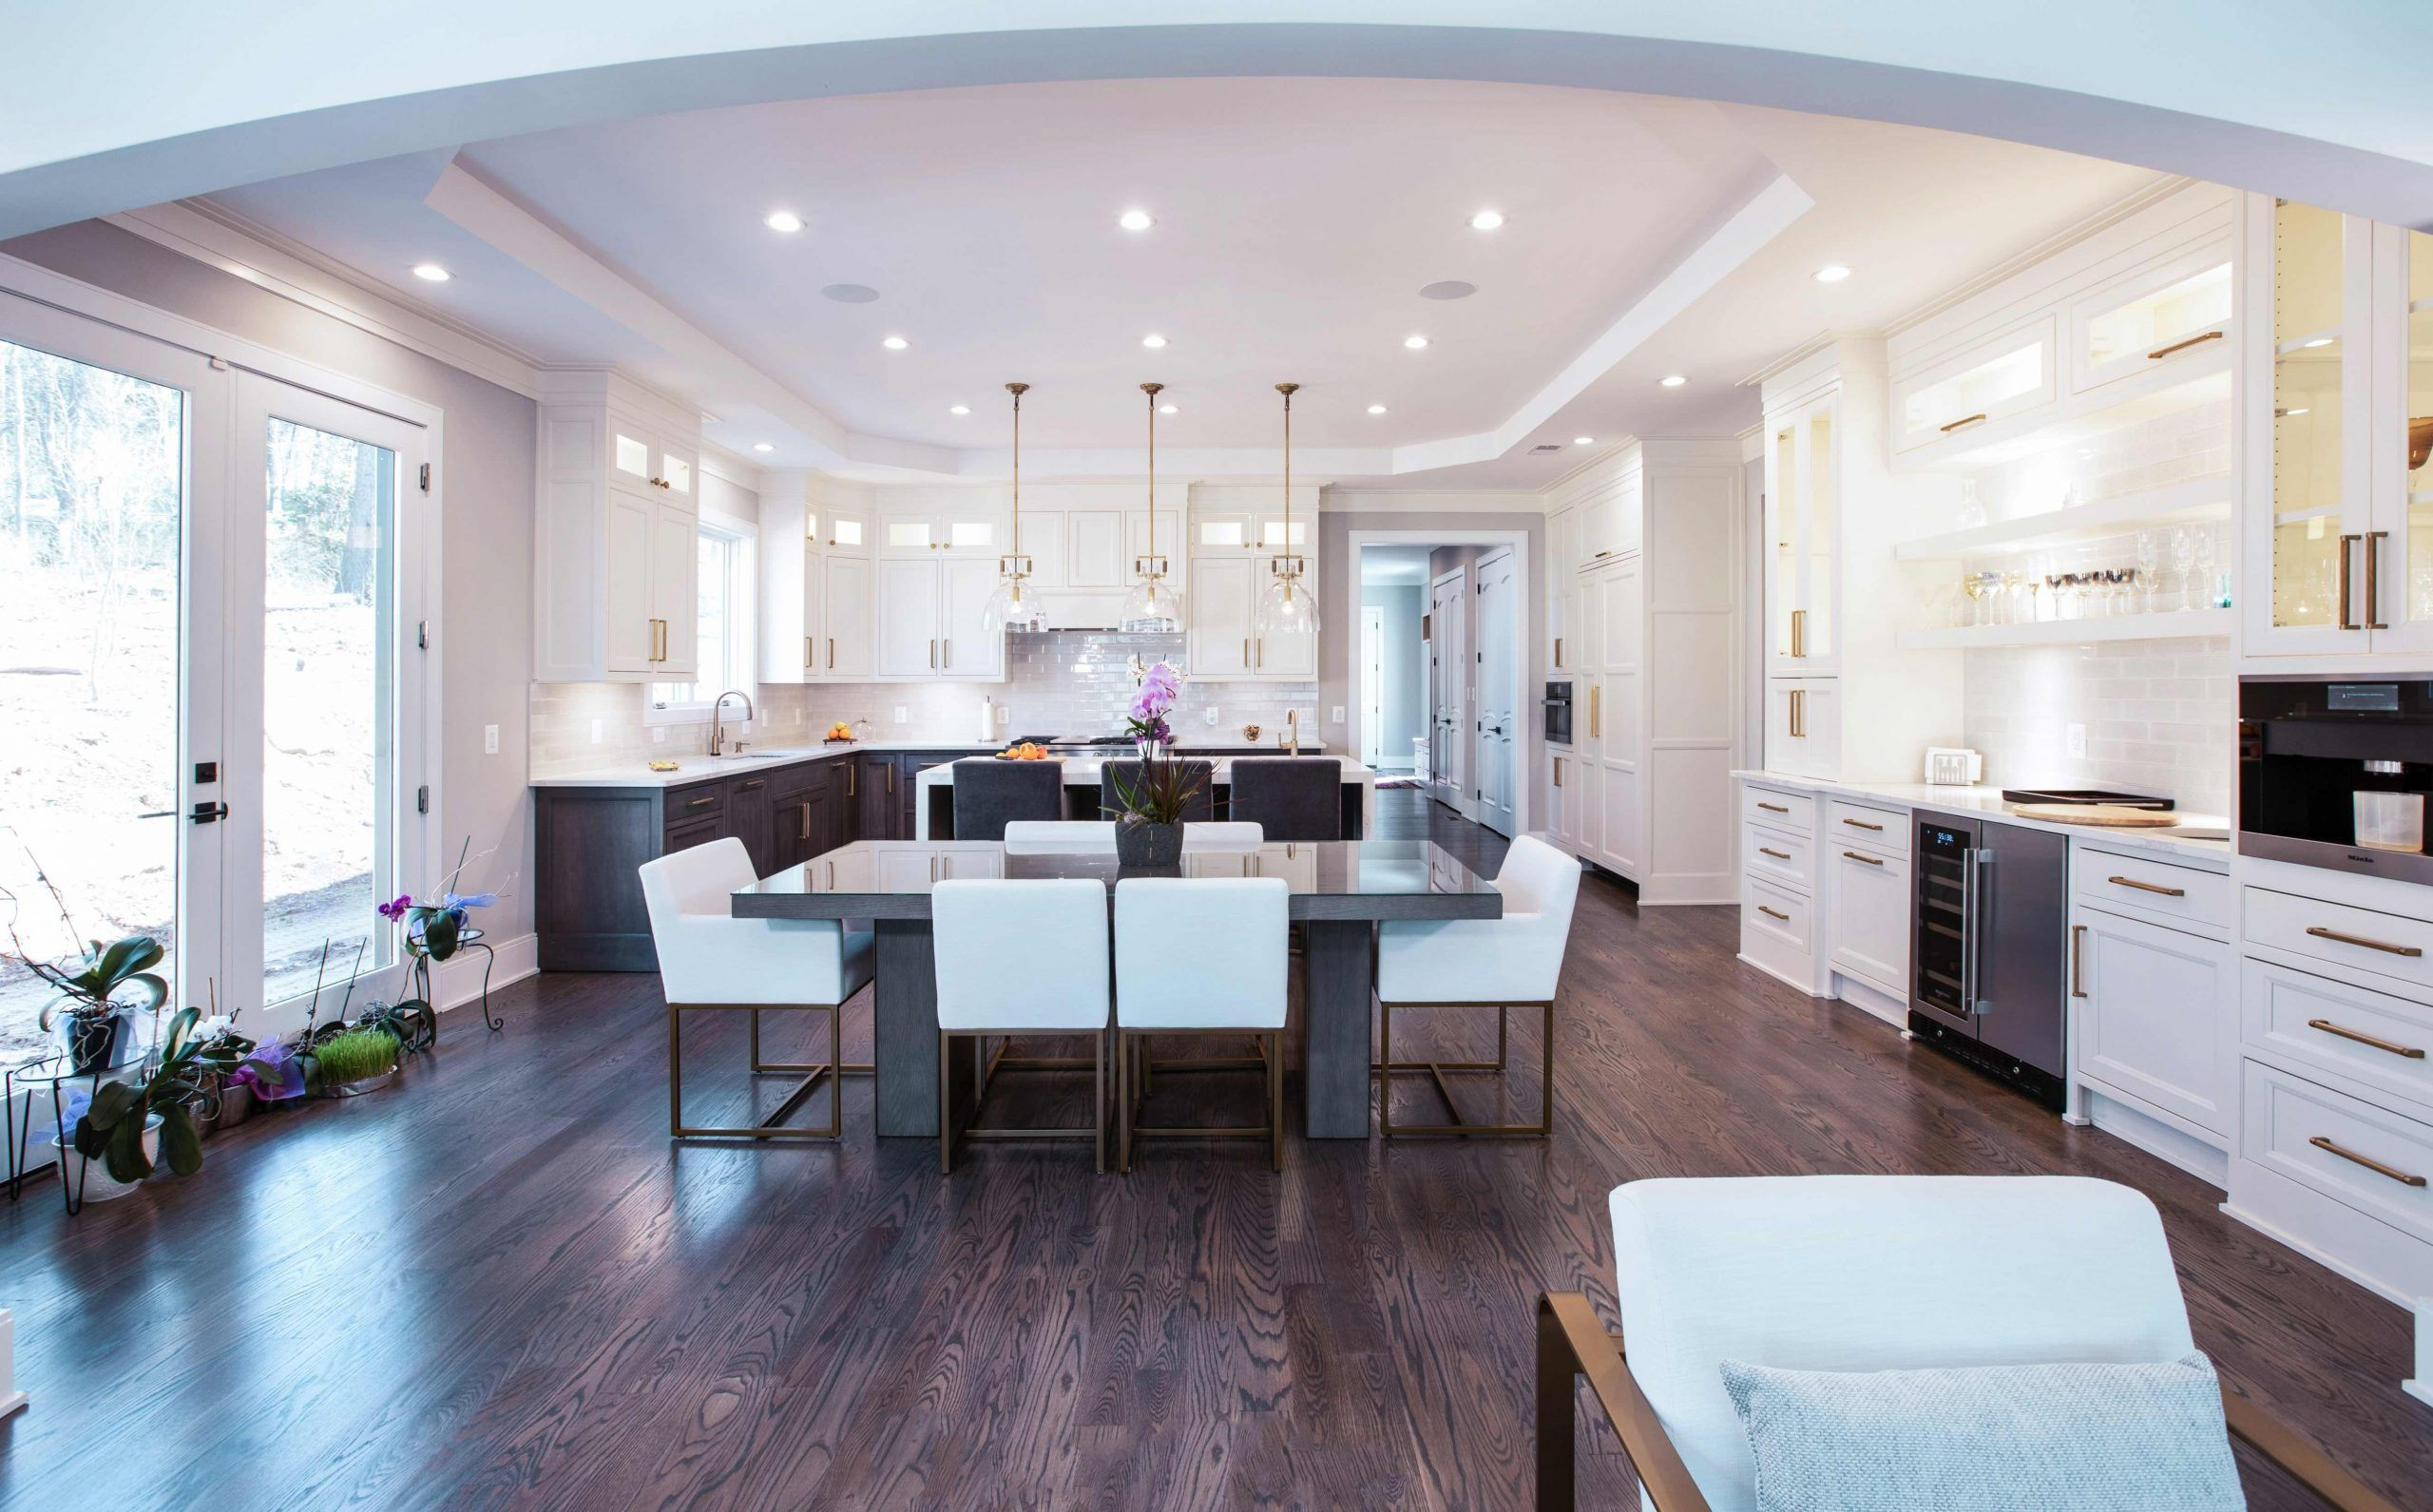 10 Decorating Kitchen Design Stores Near Me di 2020